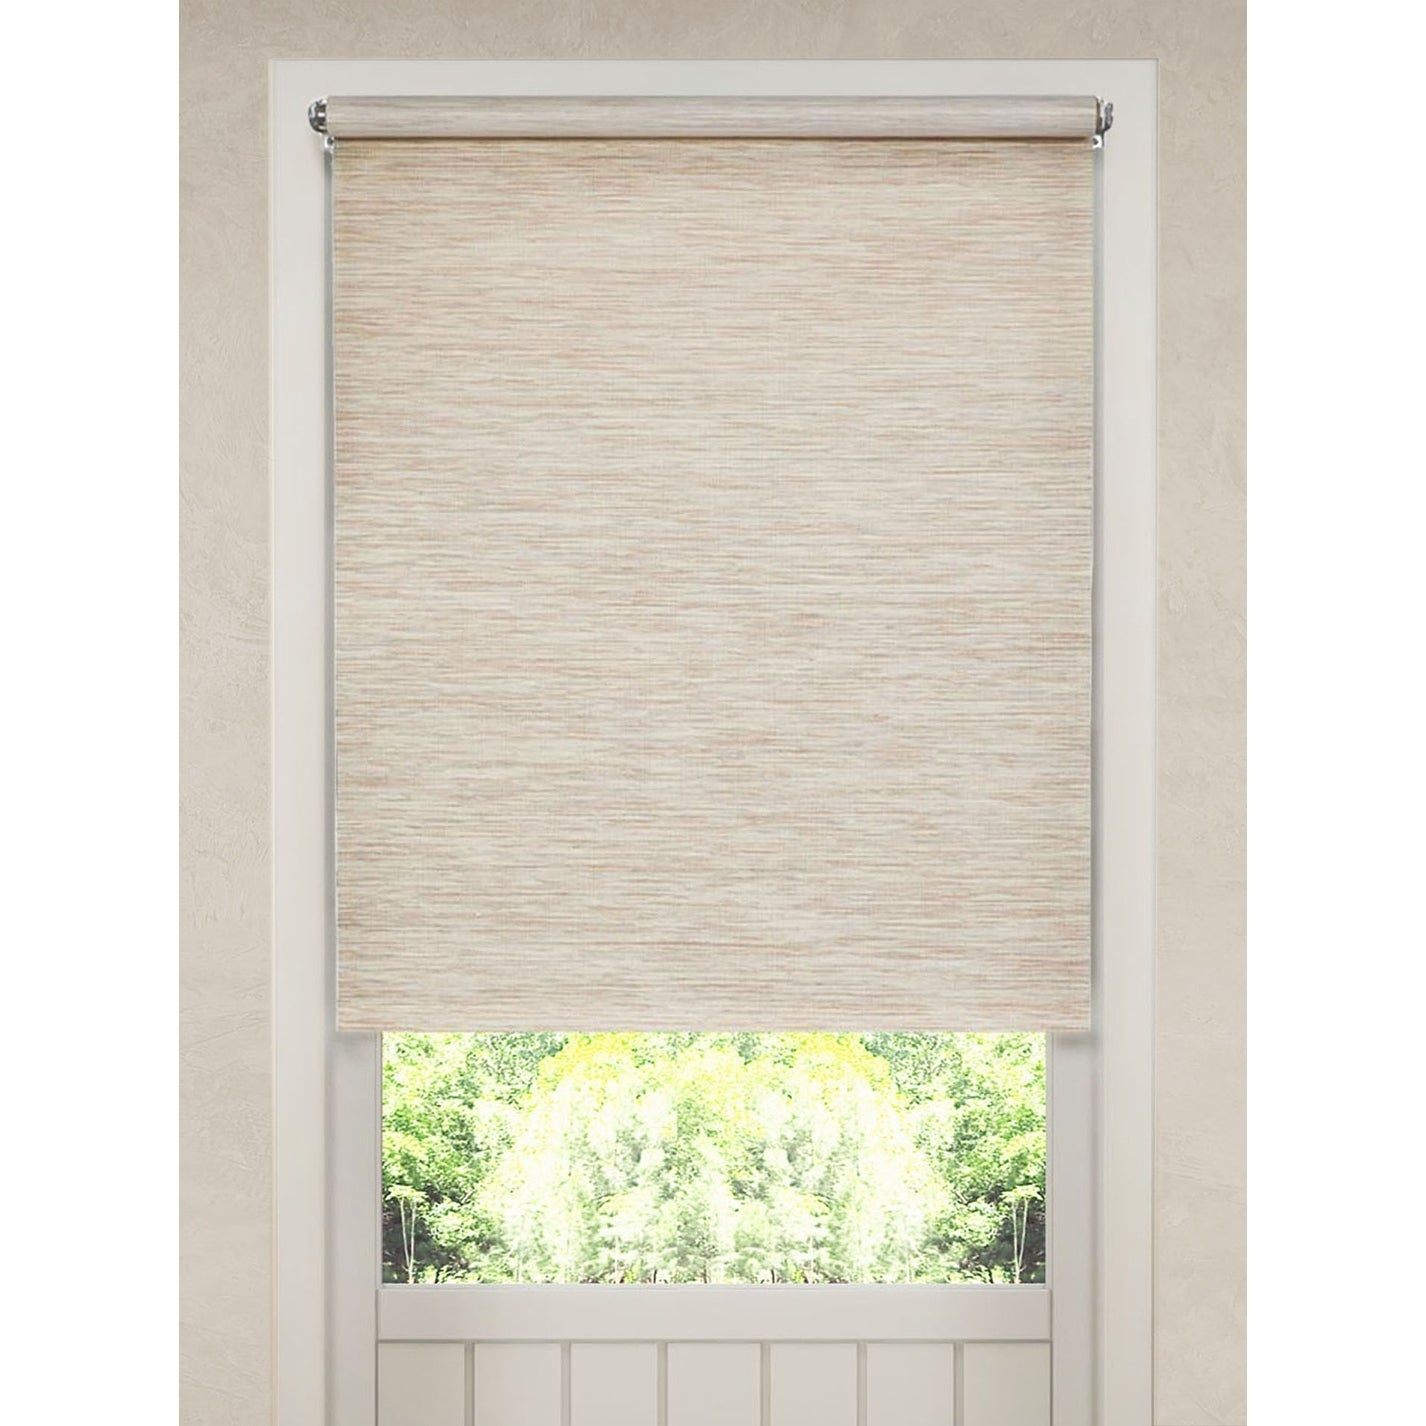 Natural Fiber Heather Tan Cordless Roller Shade On Sale Overstock 27611527